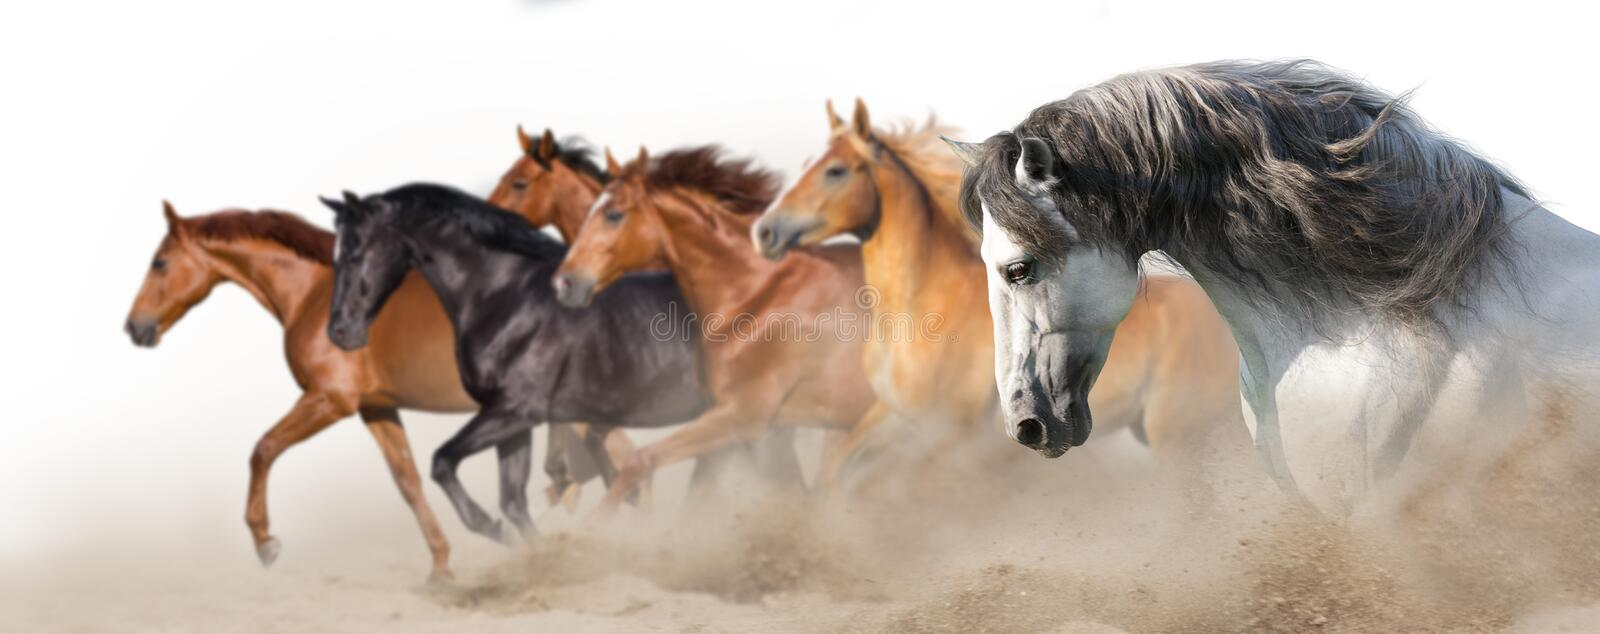 Horse herd run on white stock photography